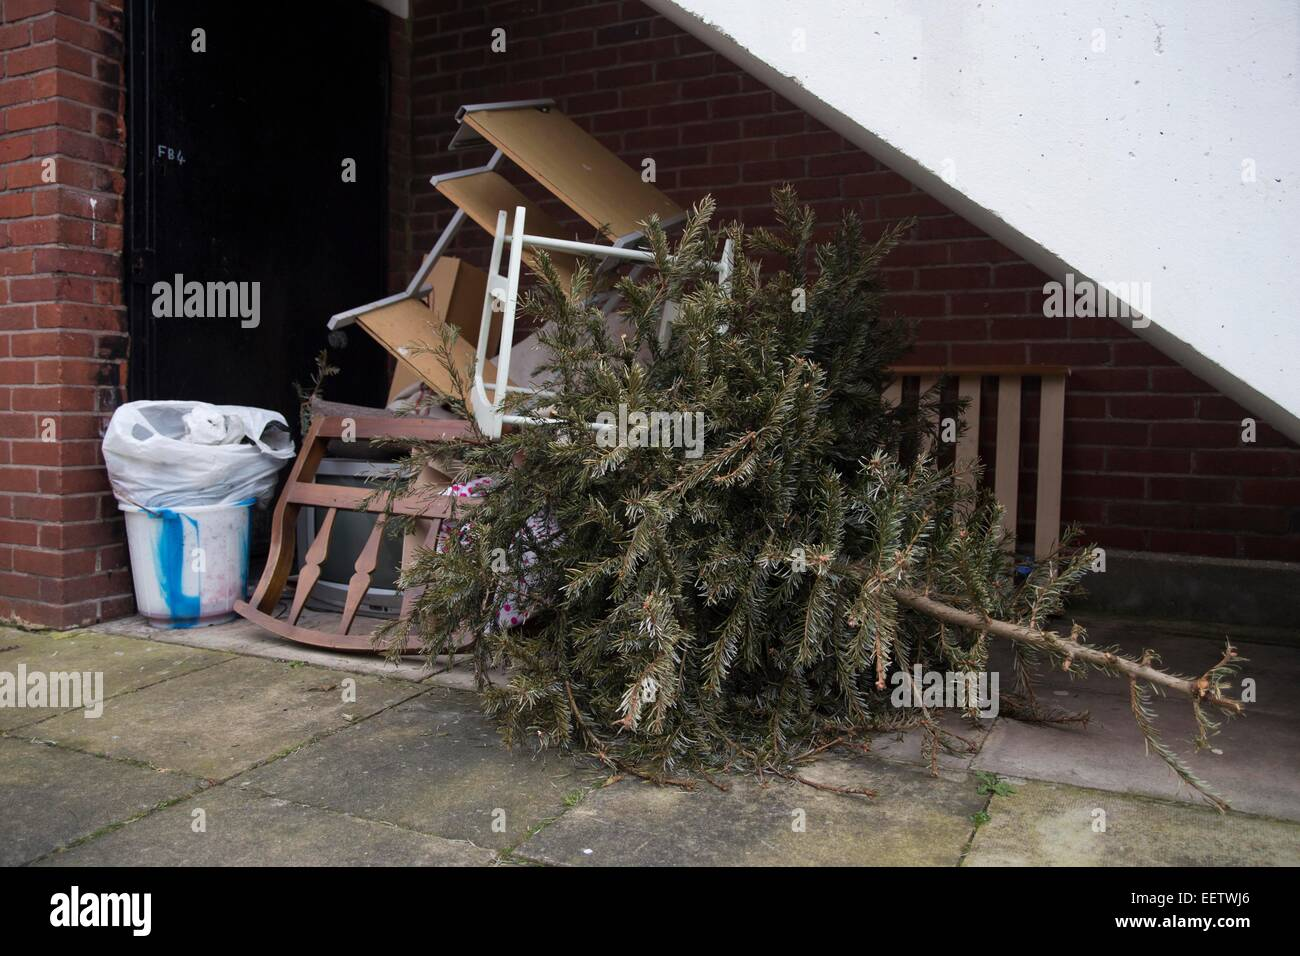 Christmas tree discarded with the rubbish. Christmas is over. January blues. Littering. Fly-tipping. - Stock Image